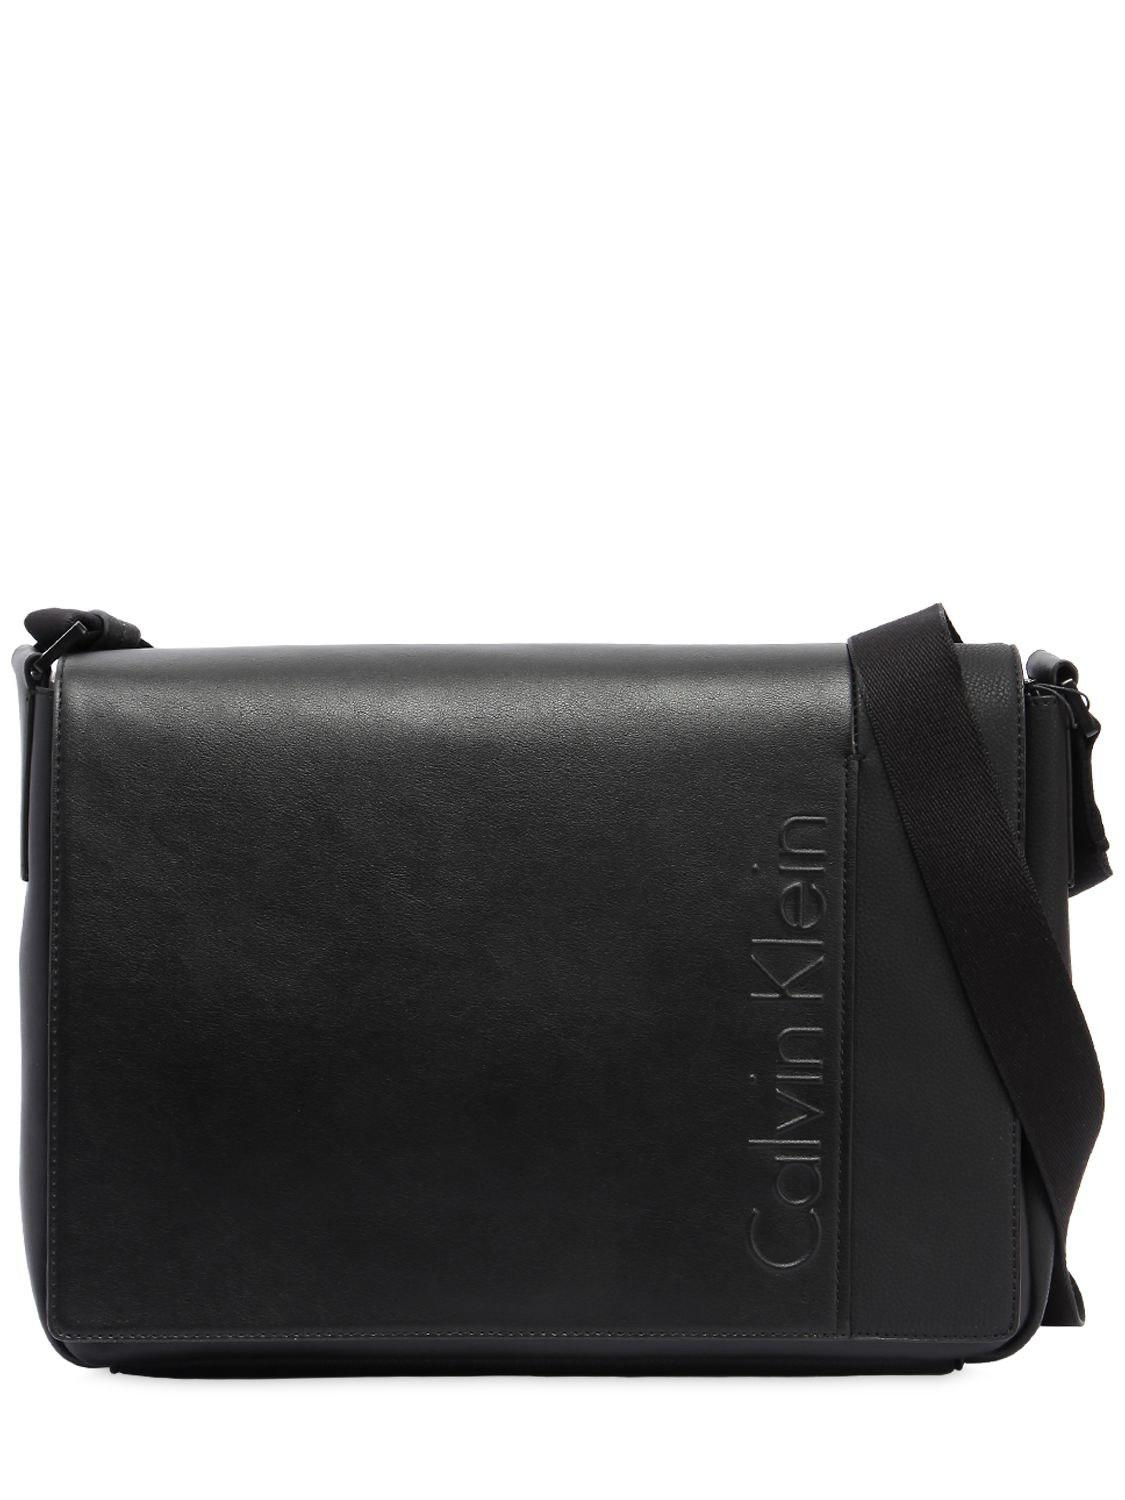 embossed logo clutch - Black CALVIN KLEIN 205W39NYC